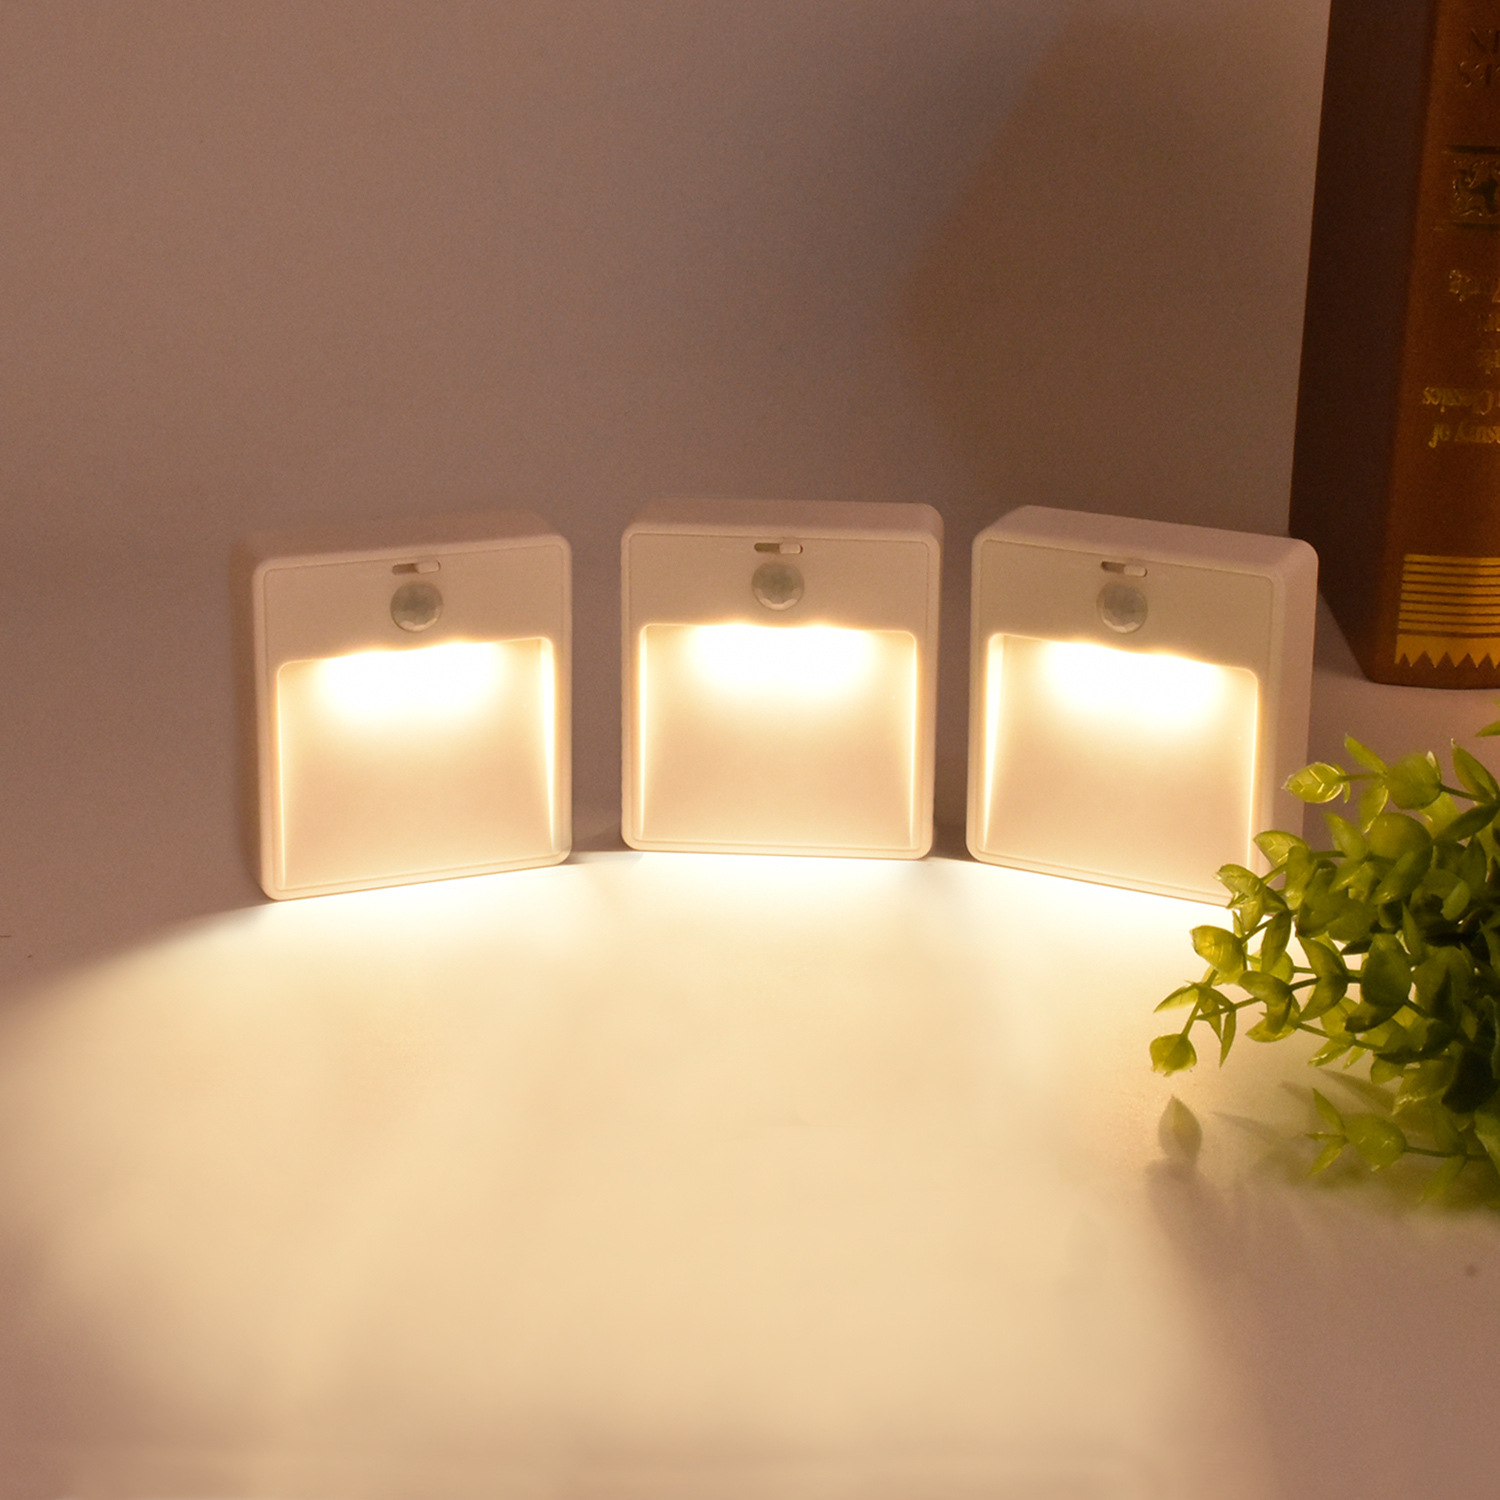 Infrared Bathroom Light Compare Prices On Portable Infrared Light Online Shopping Buy Low